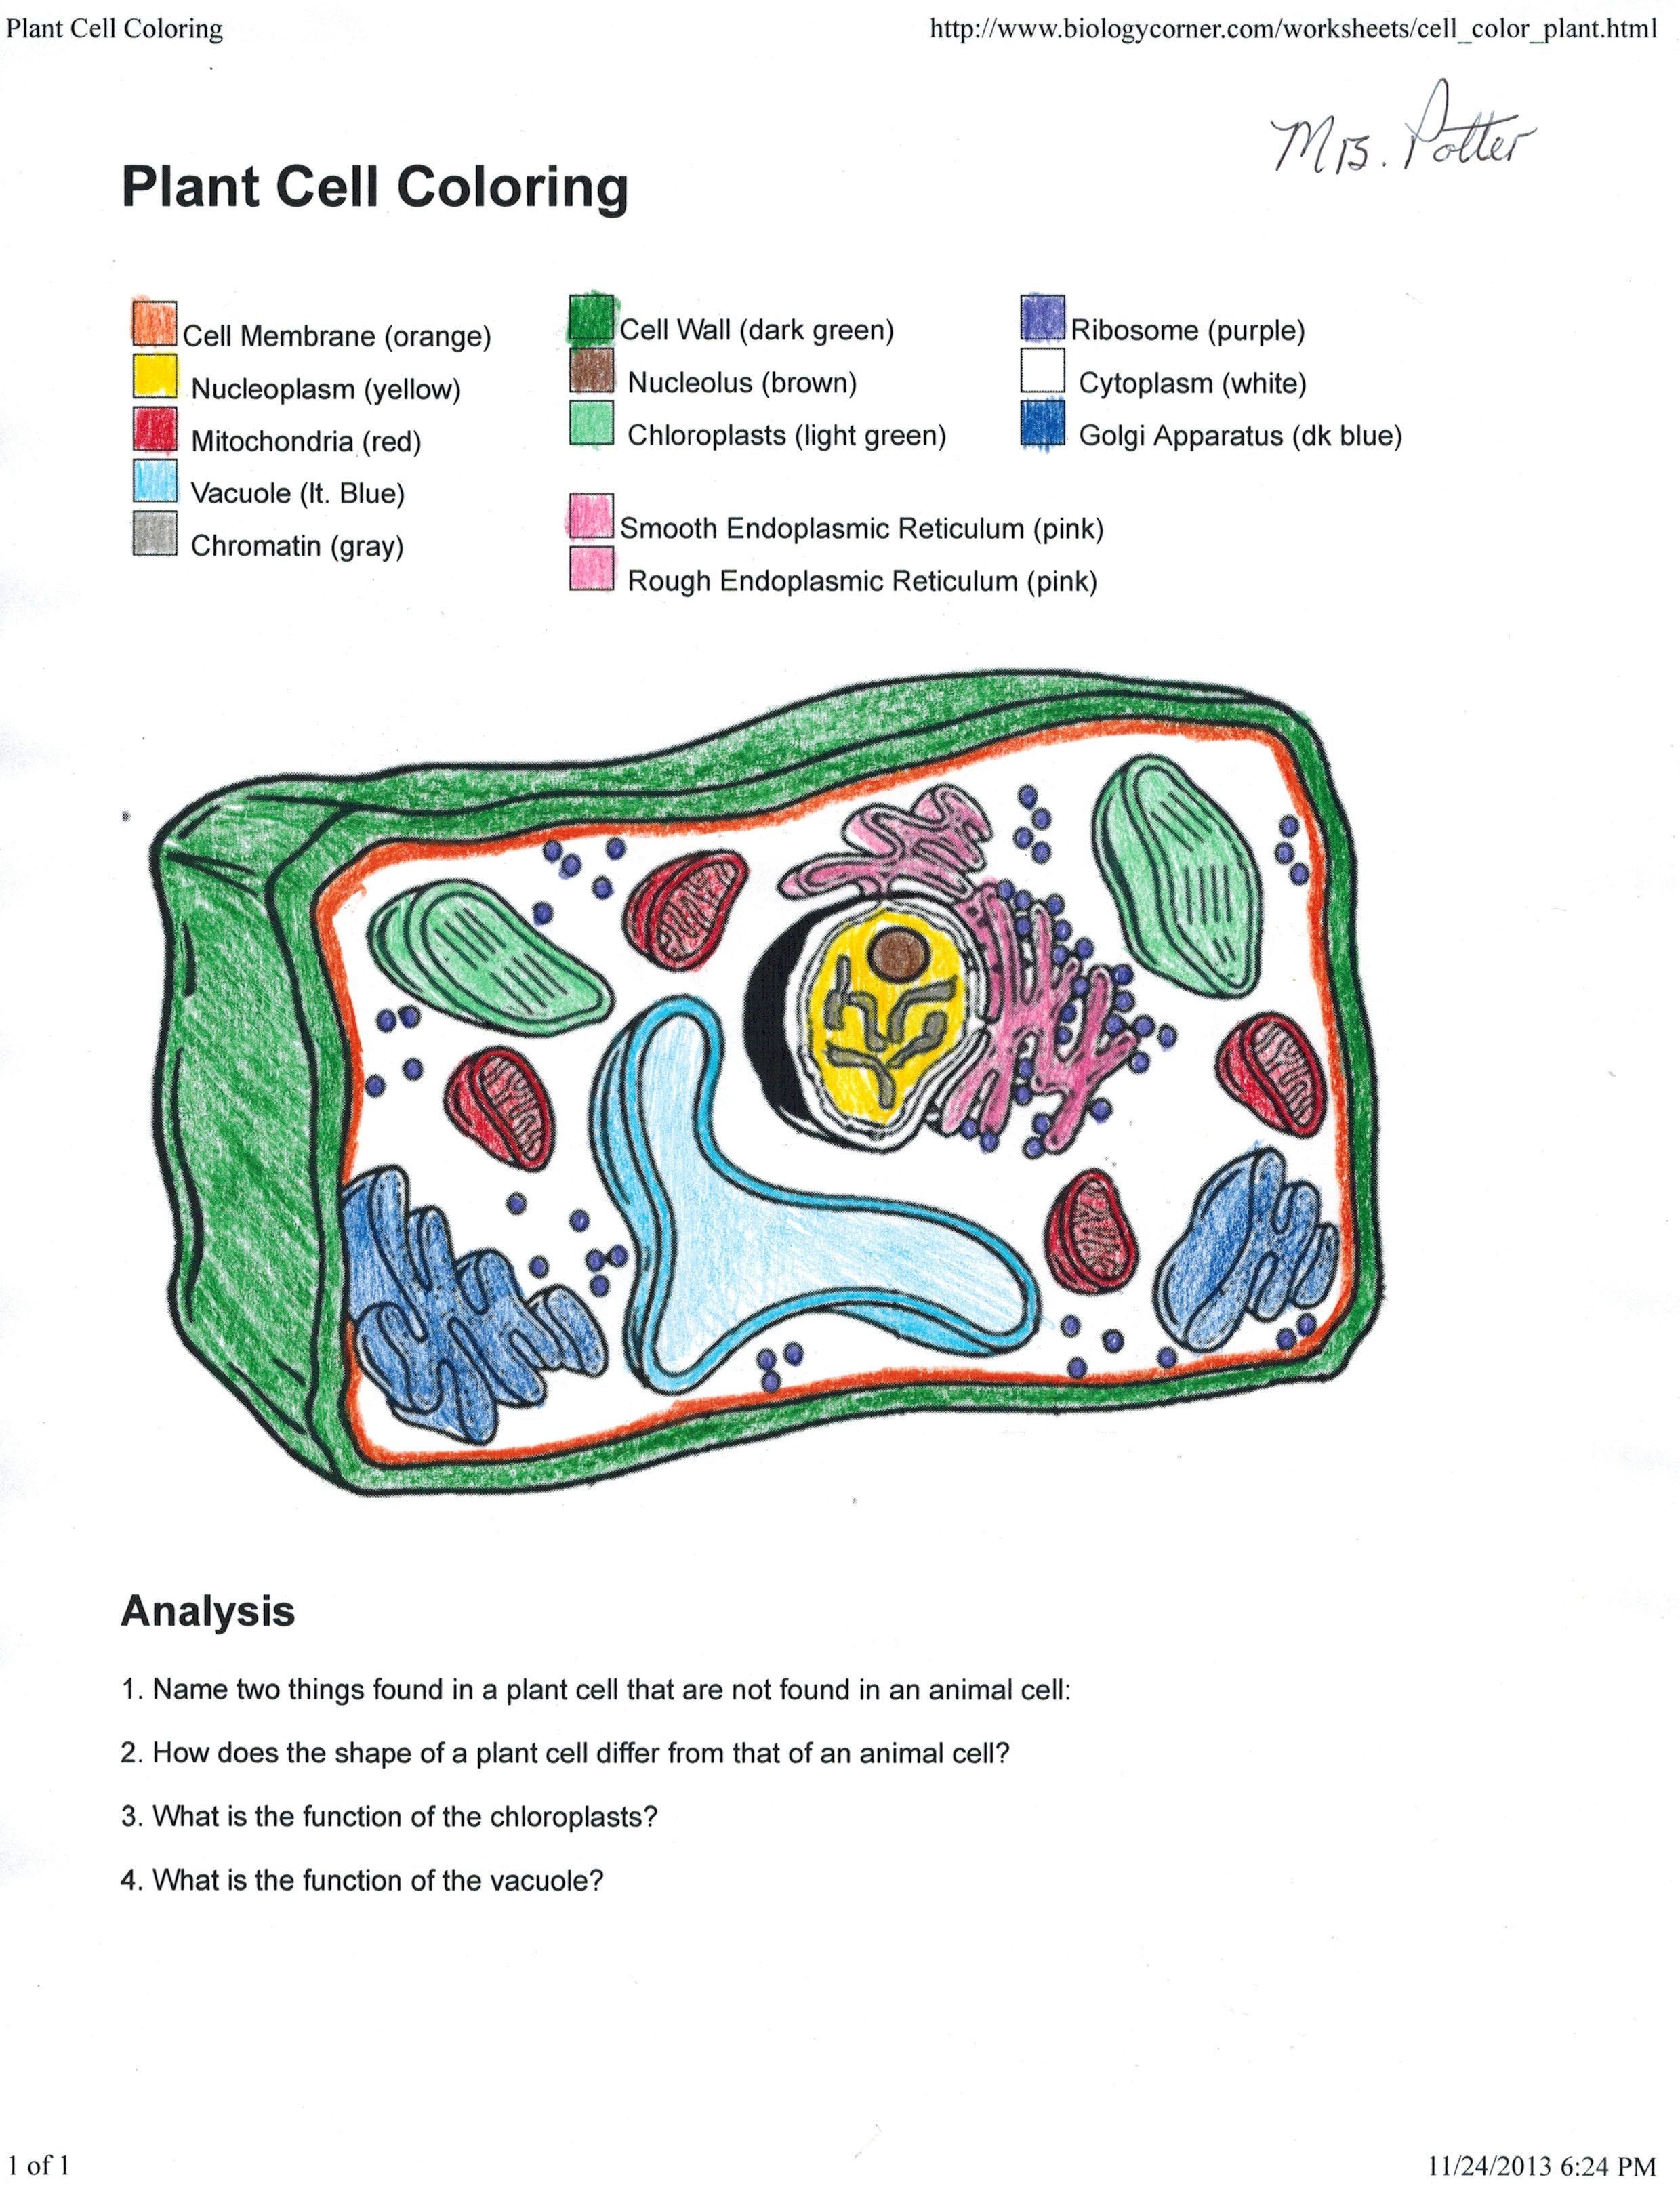 Plant Cell Coloring Key 0 On Plant Cell Coloring Key Animal